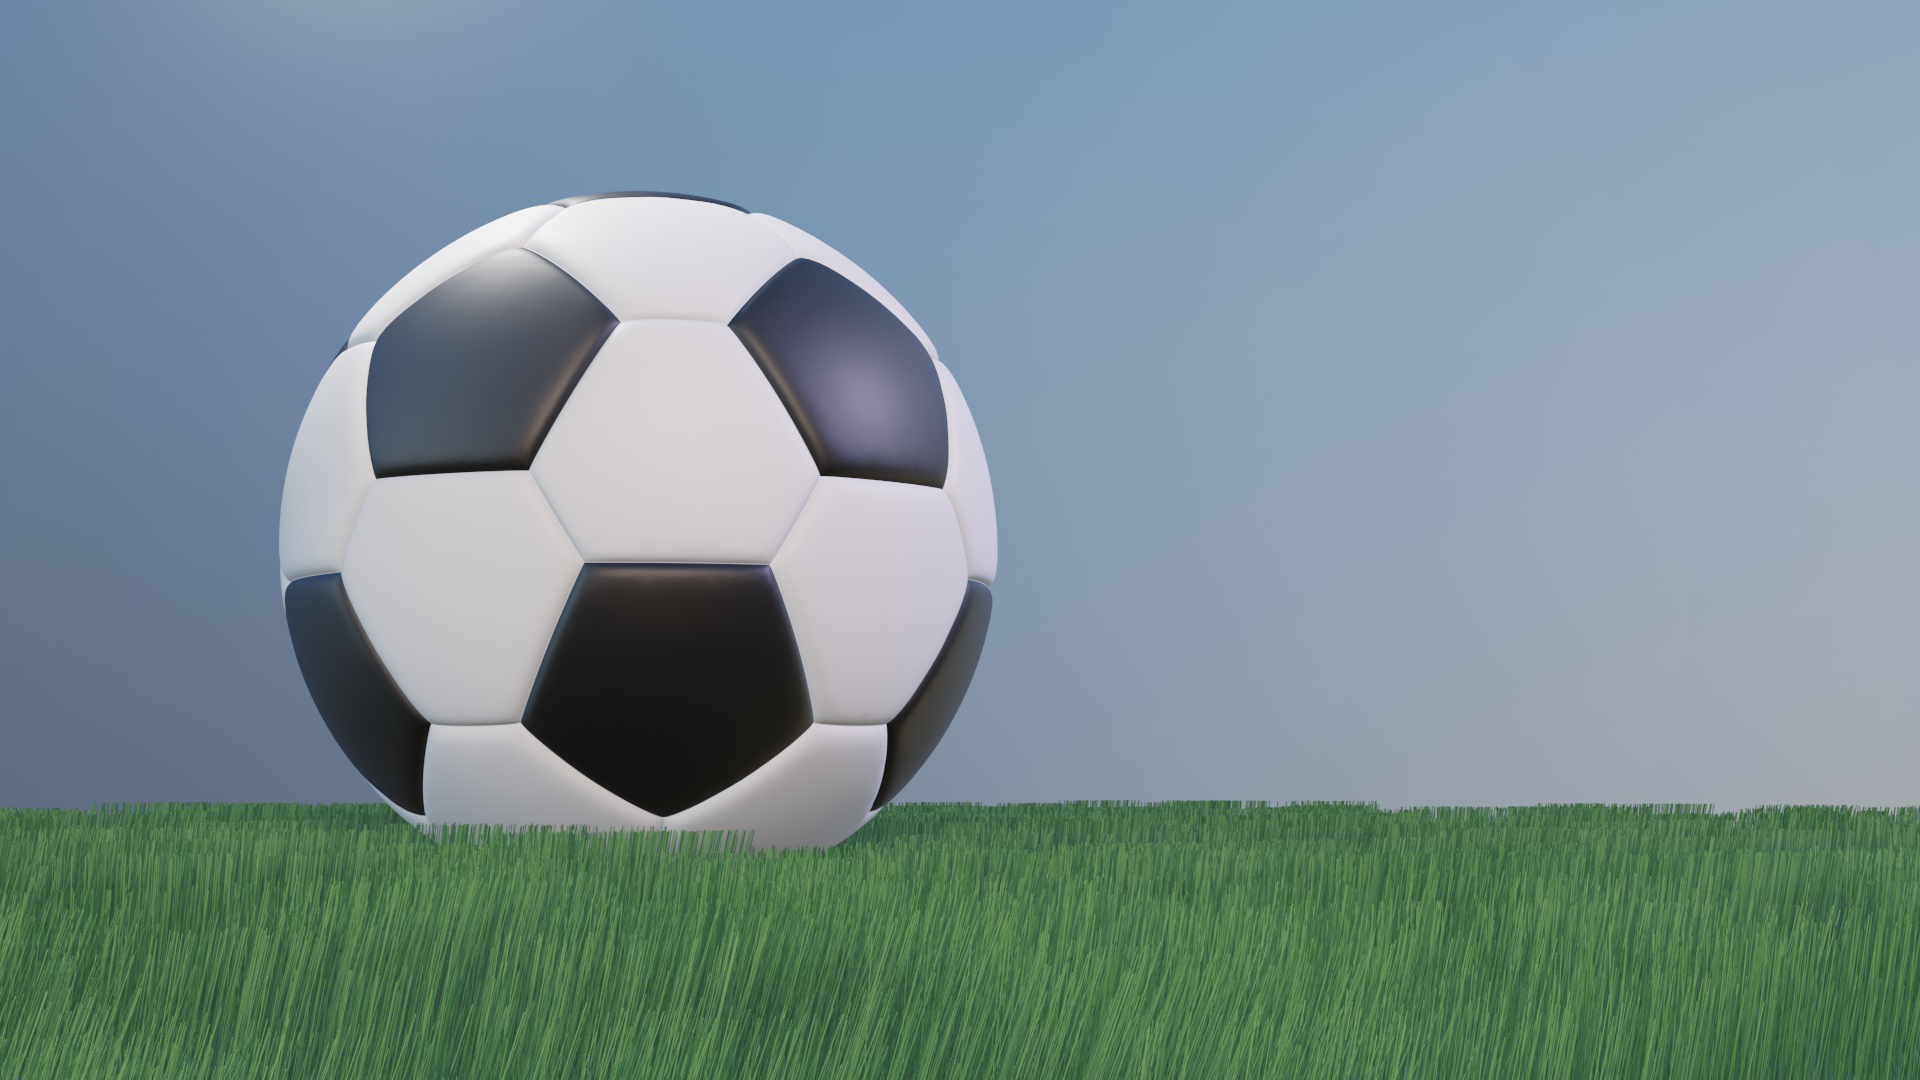 Soccer Ball preview image 1